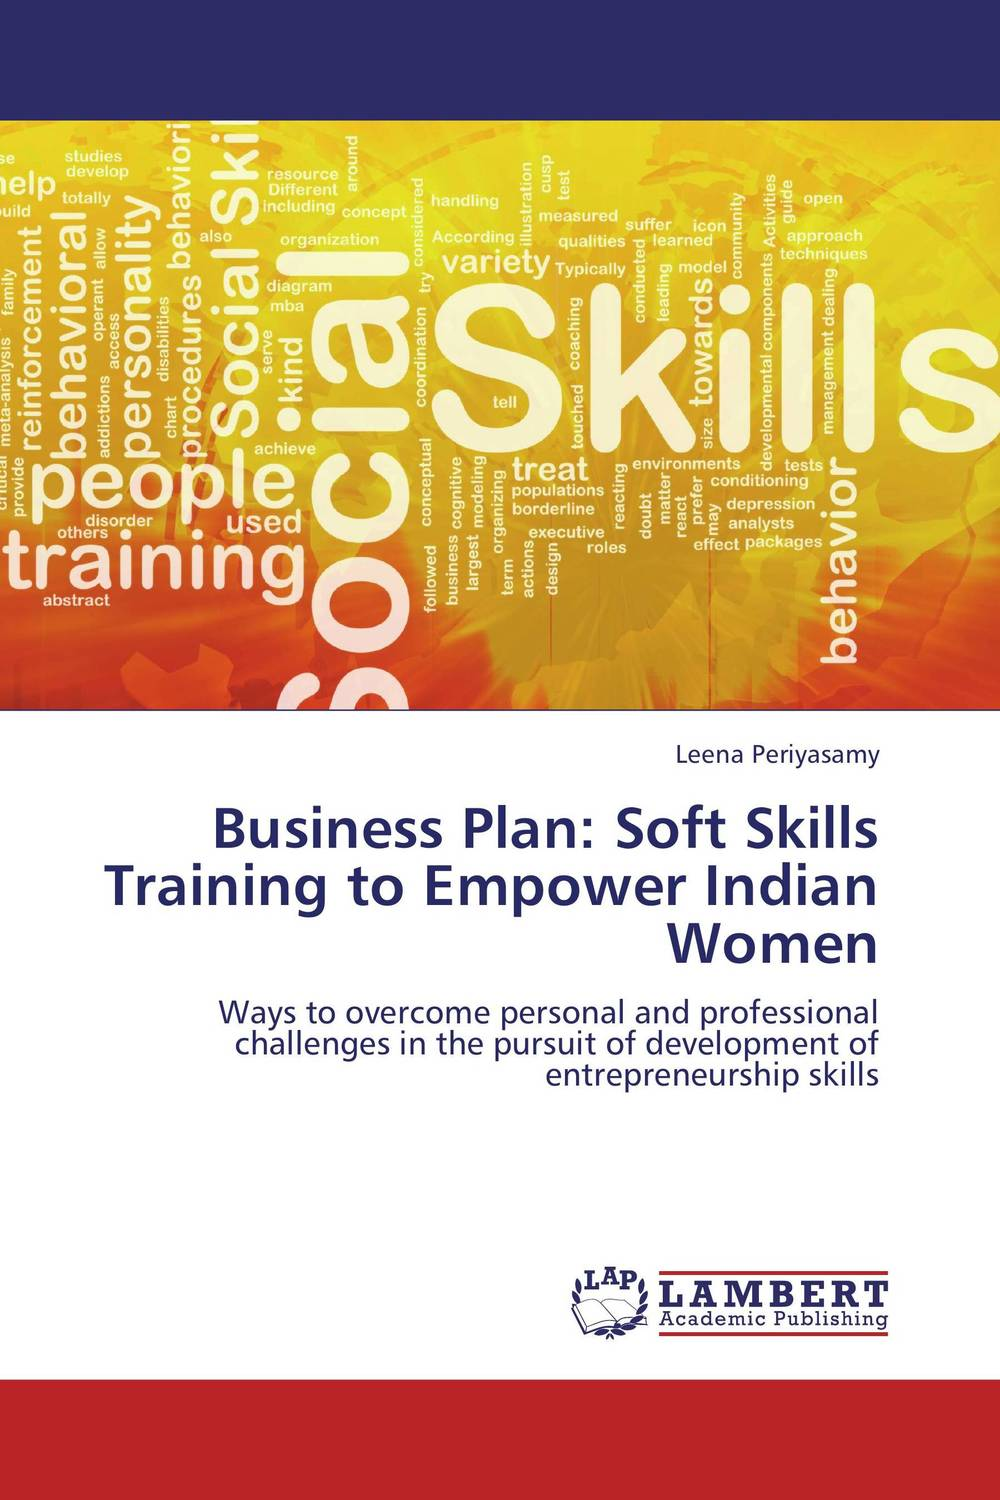 Business Plan: Soft Skills Training to Empower Indian Women